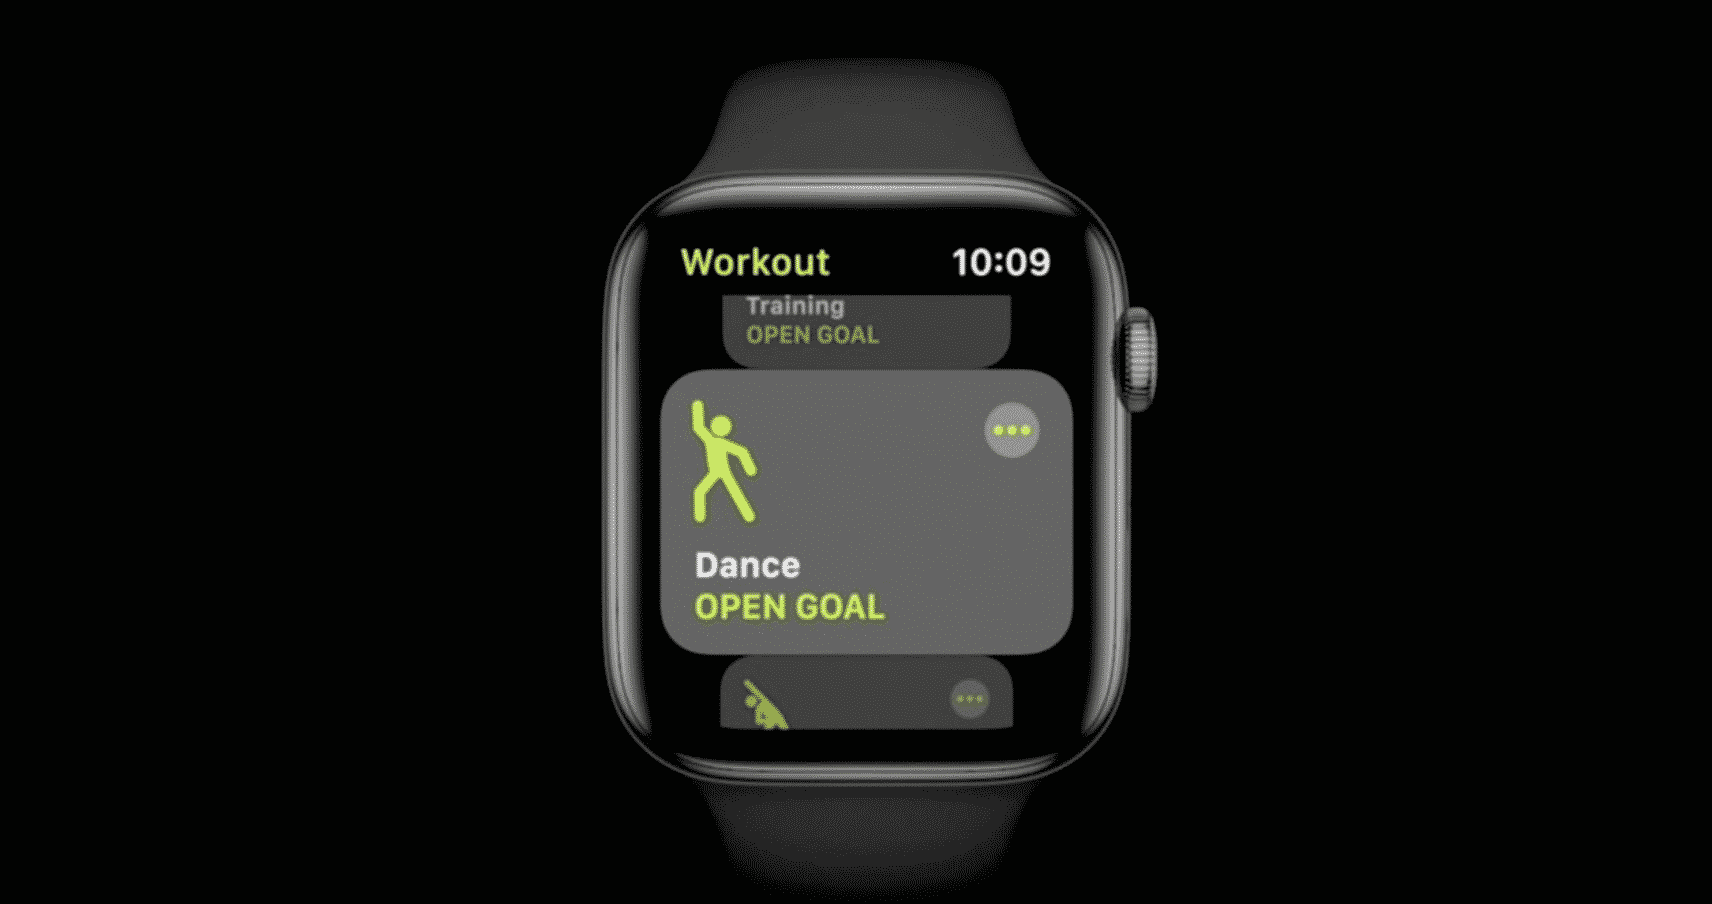 International Dance Day and Earth Day Apple Watch activity challenges now live